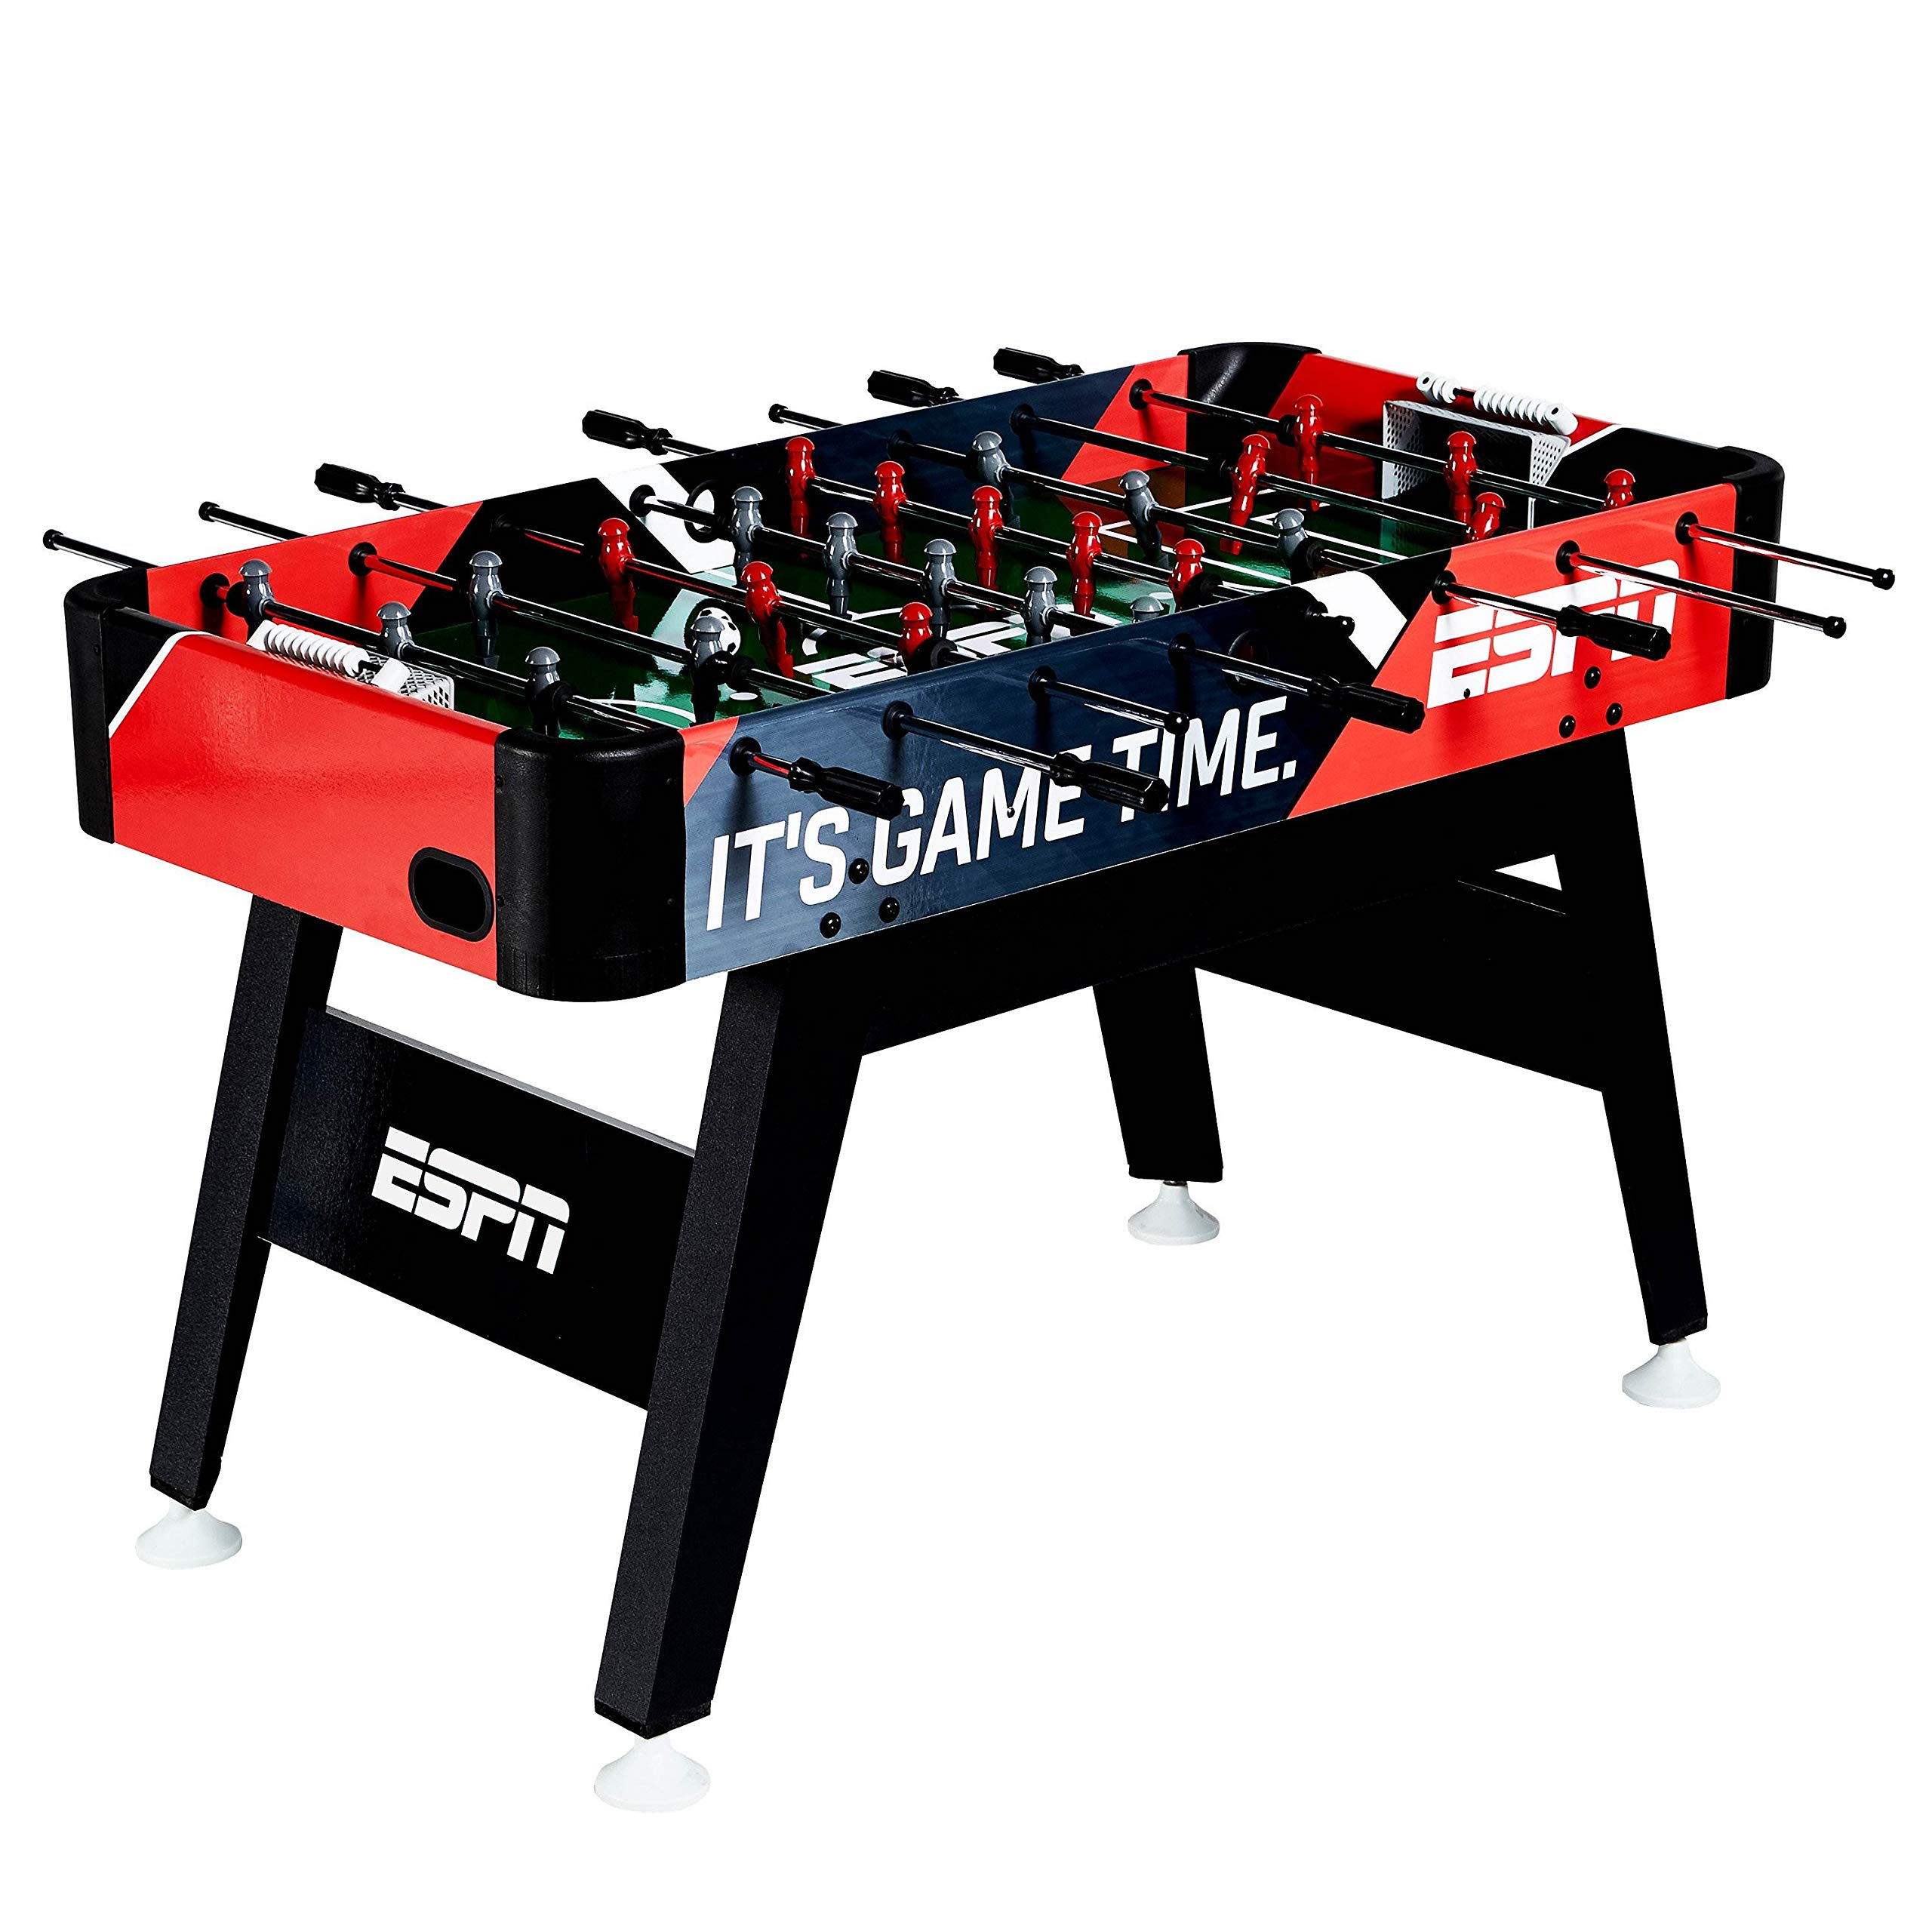 MD Sports ESPN 54-Inch Foosball Soccer ArcadeTable with Bead Scoring and Accessories by MD Sports